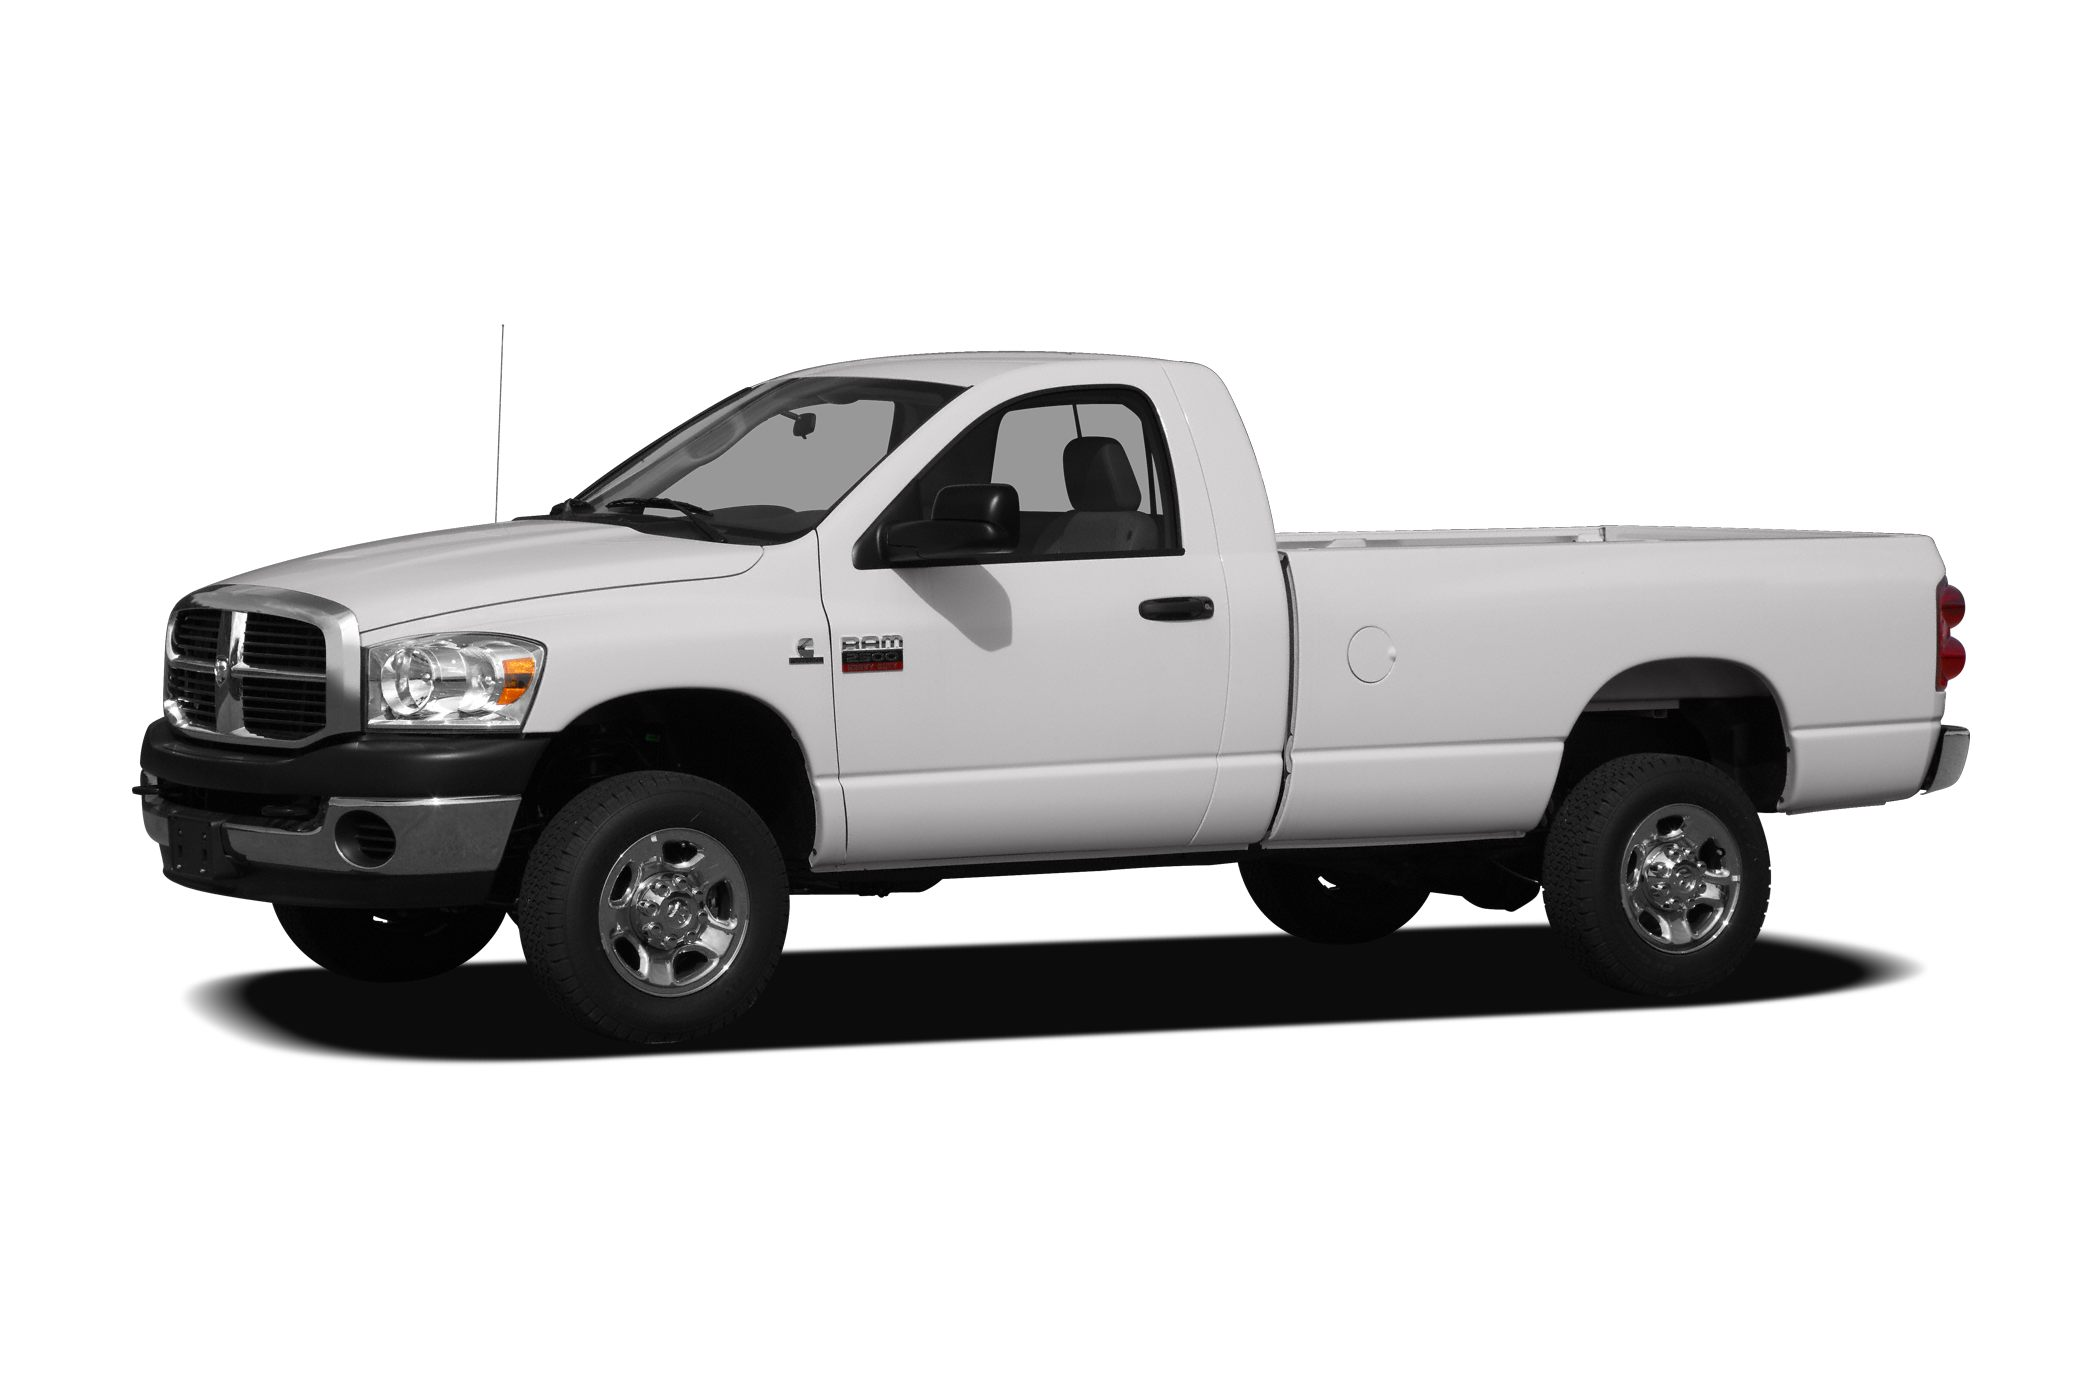 2009 Dodge Ram 2500 SLT Crew Cab Pickup for sale in Mooresville for $29,874 with 123,157 miles